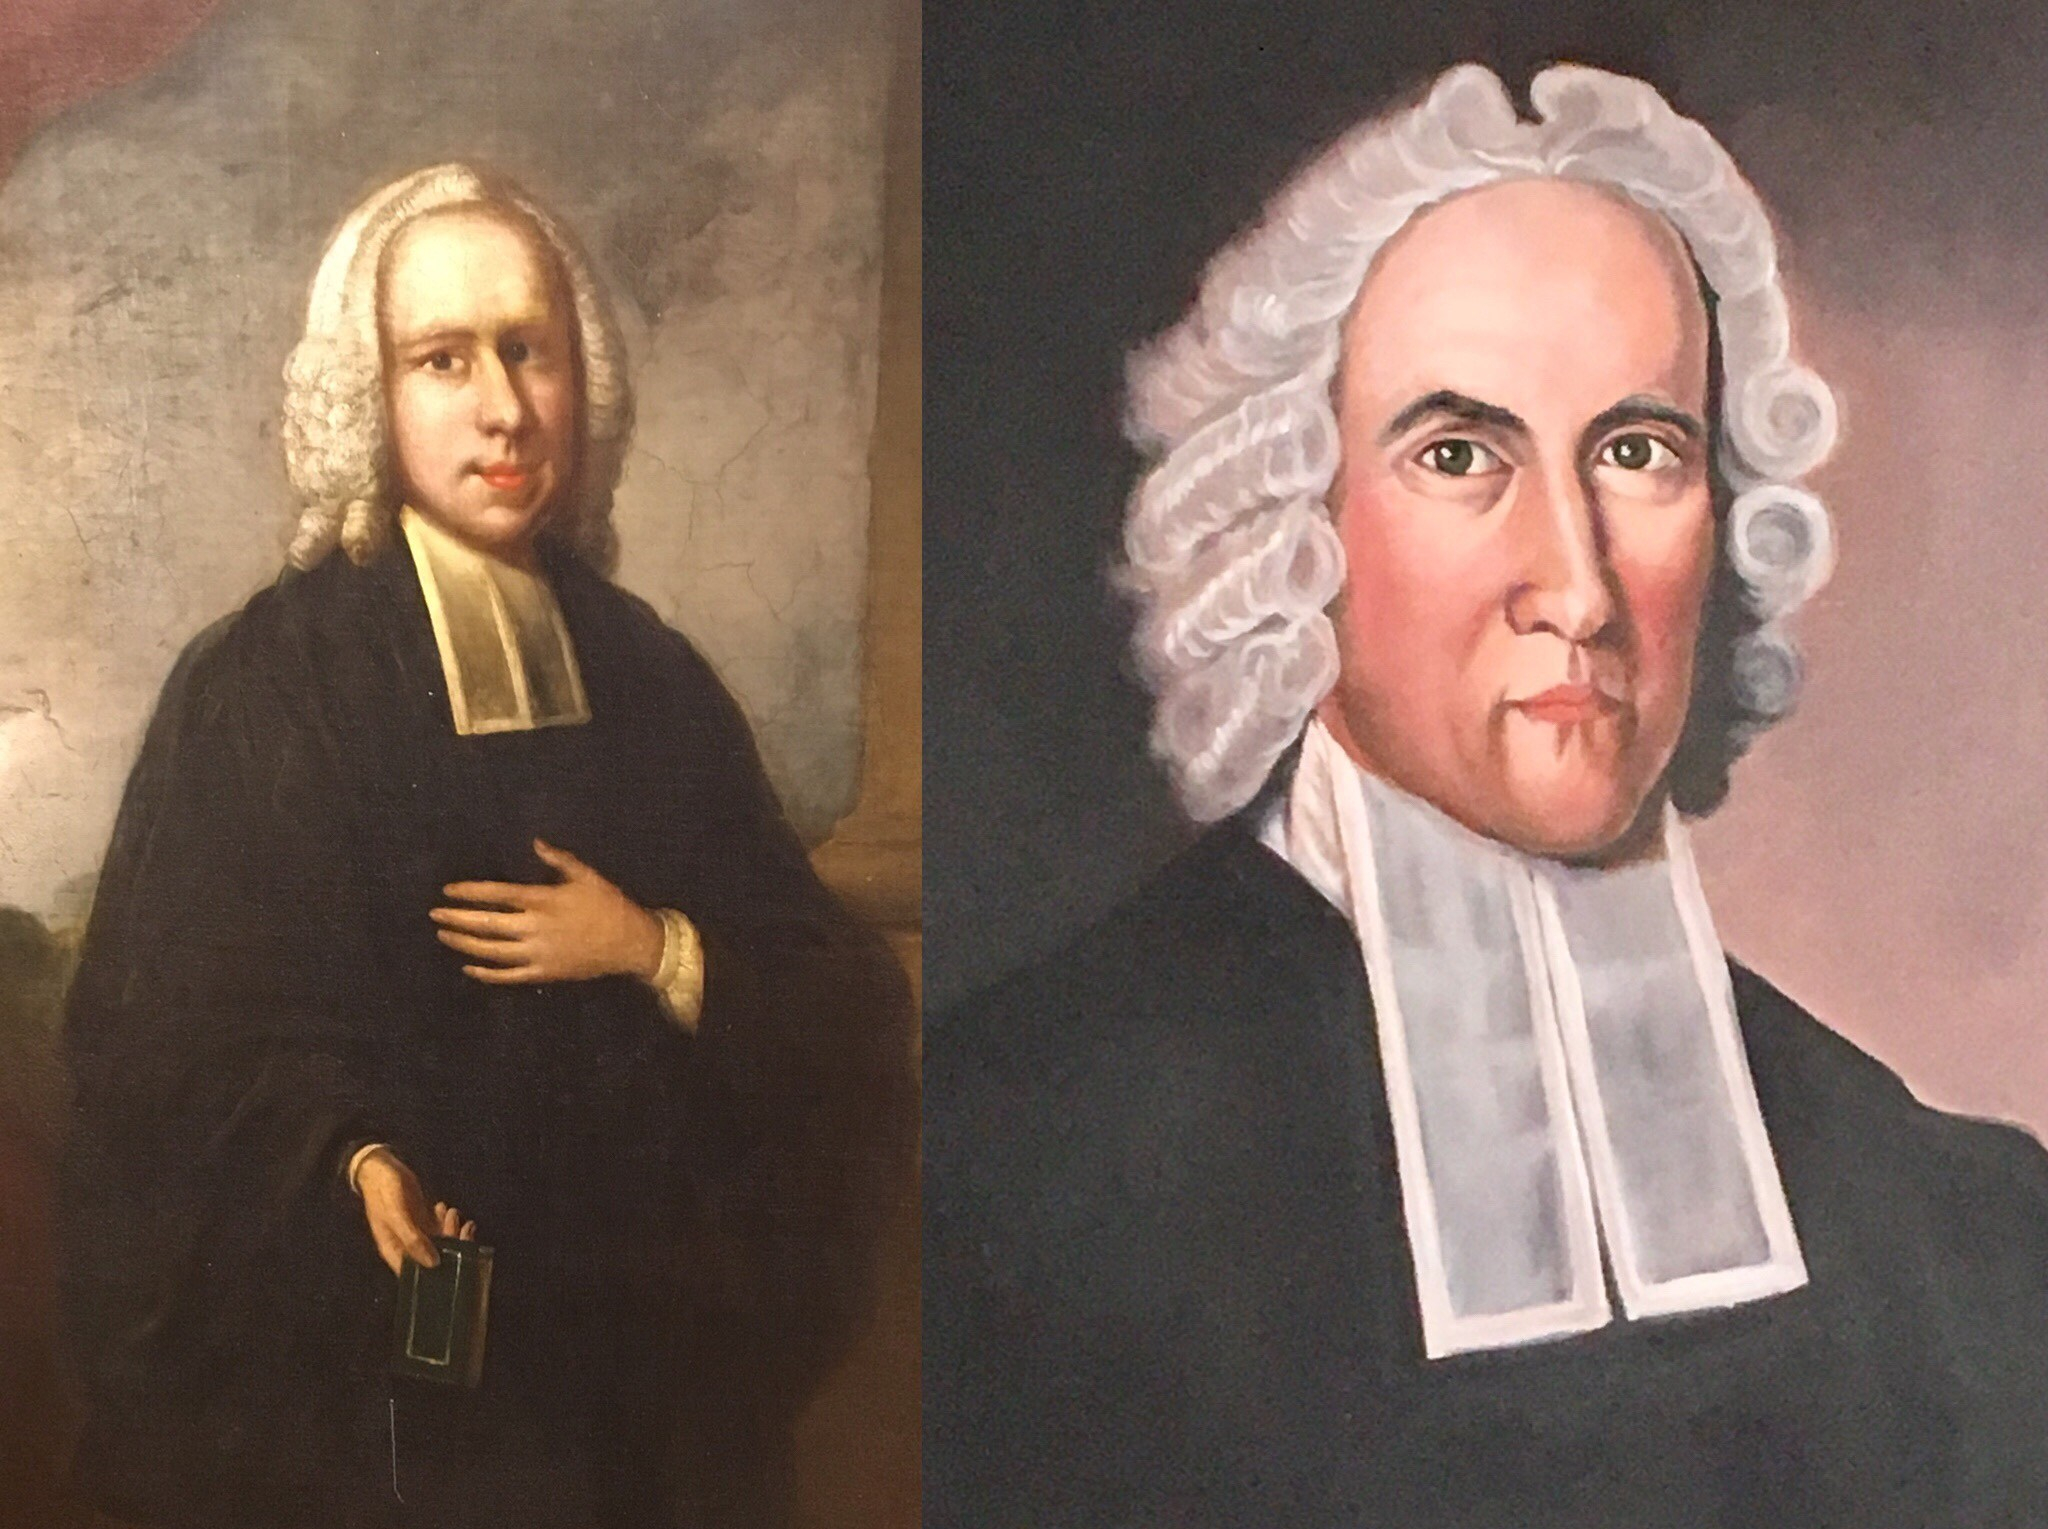 Whitefield & Edwards with wigs